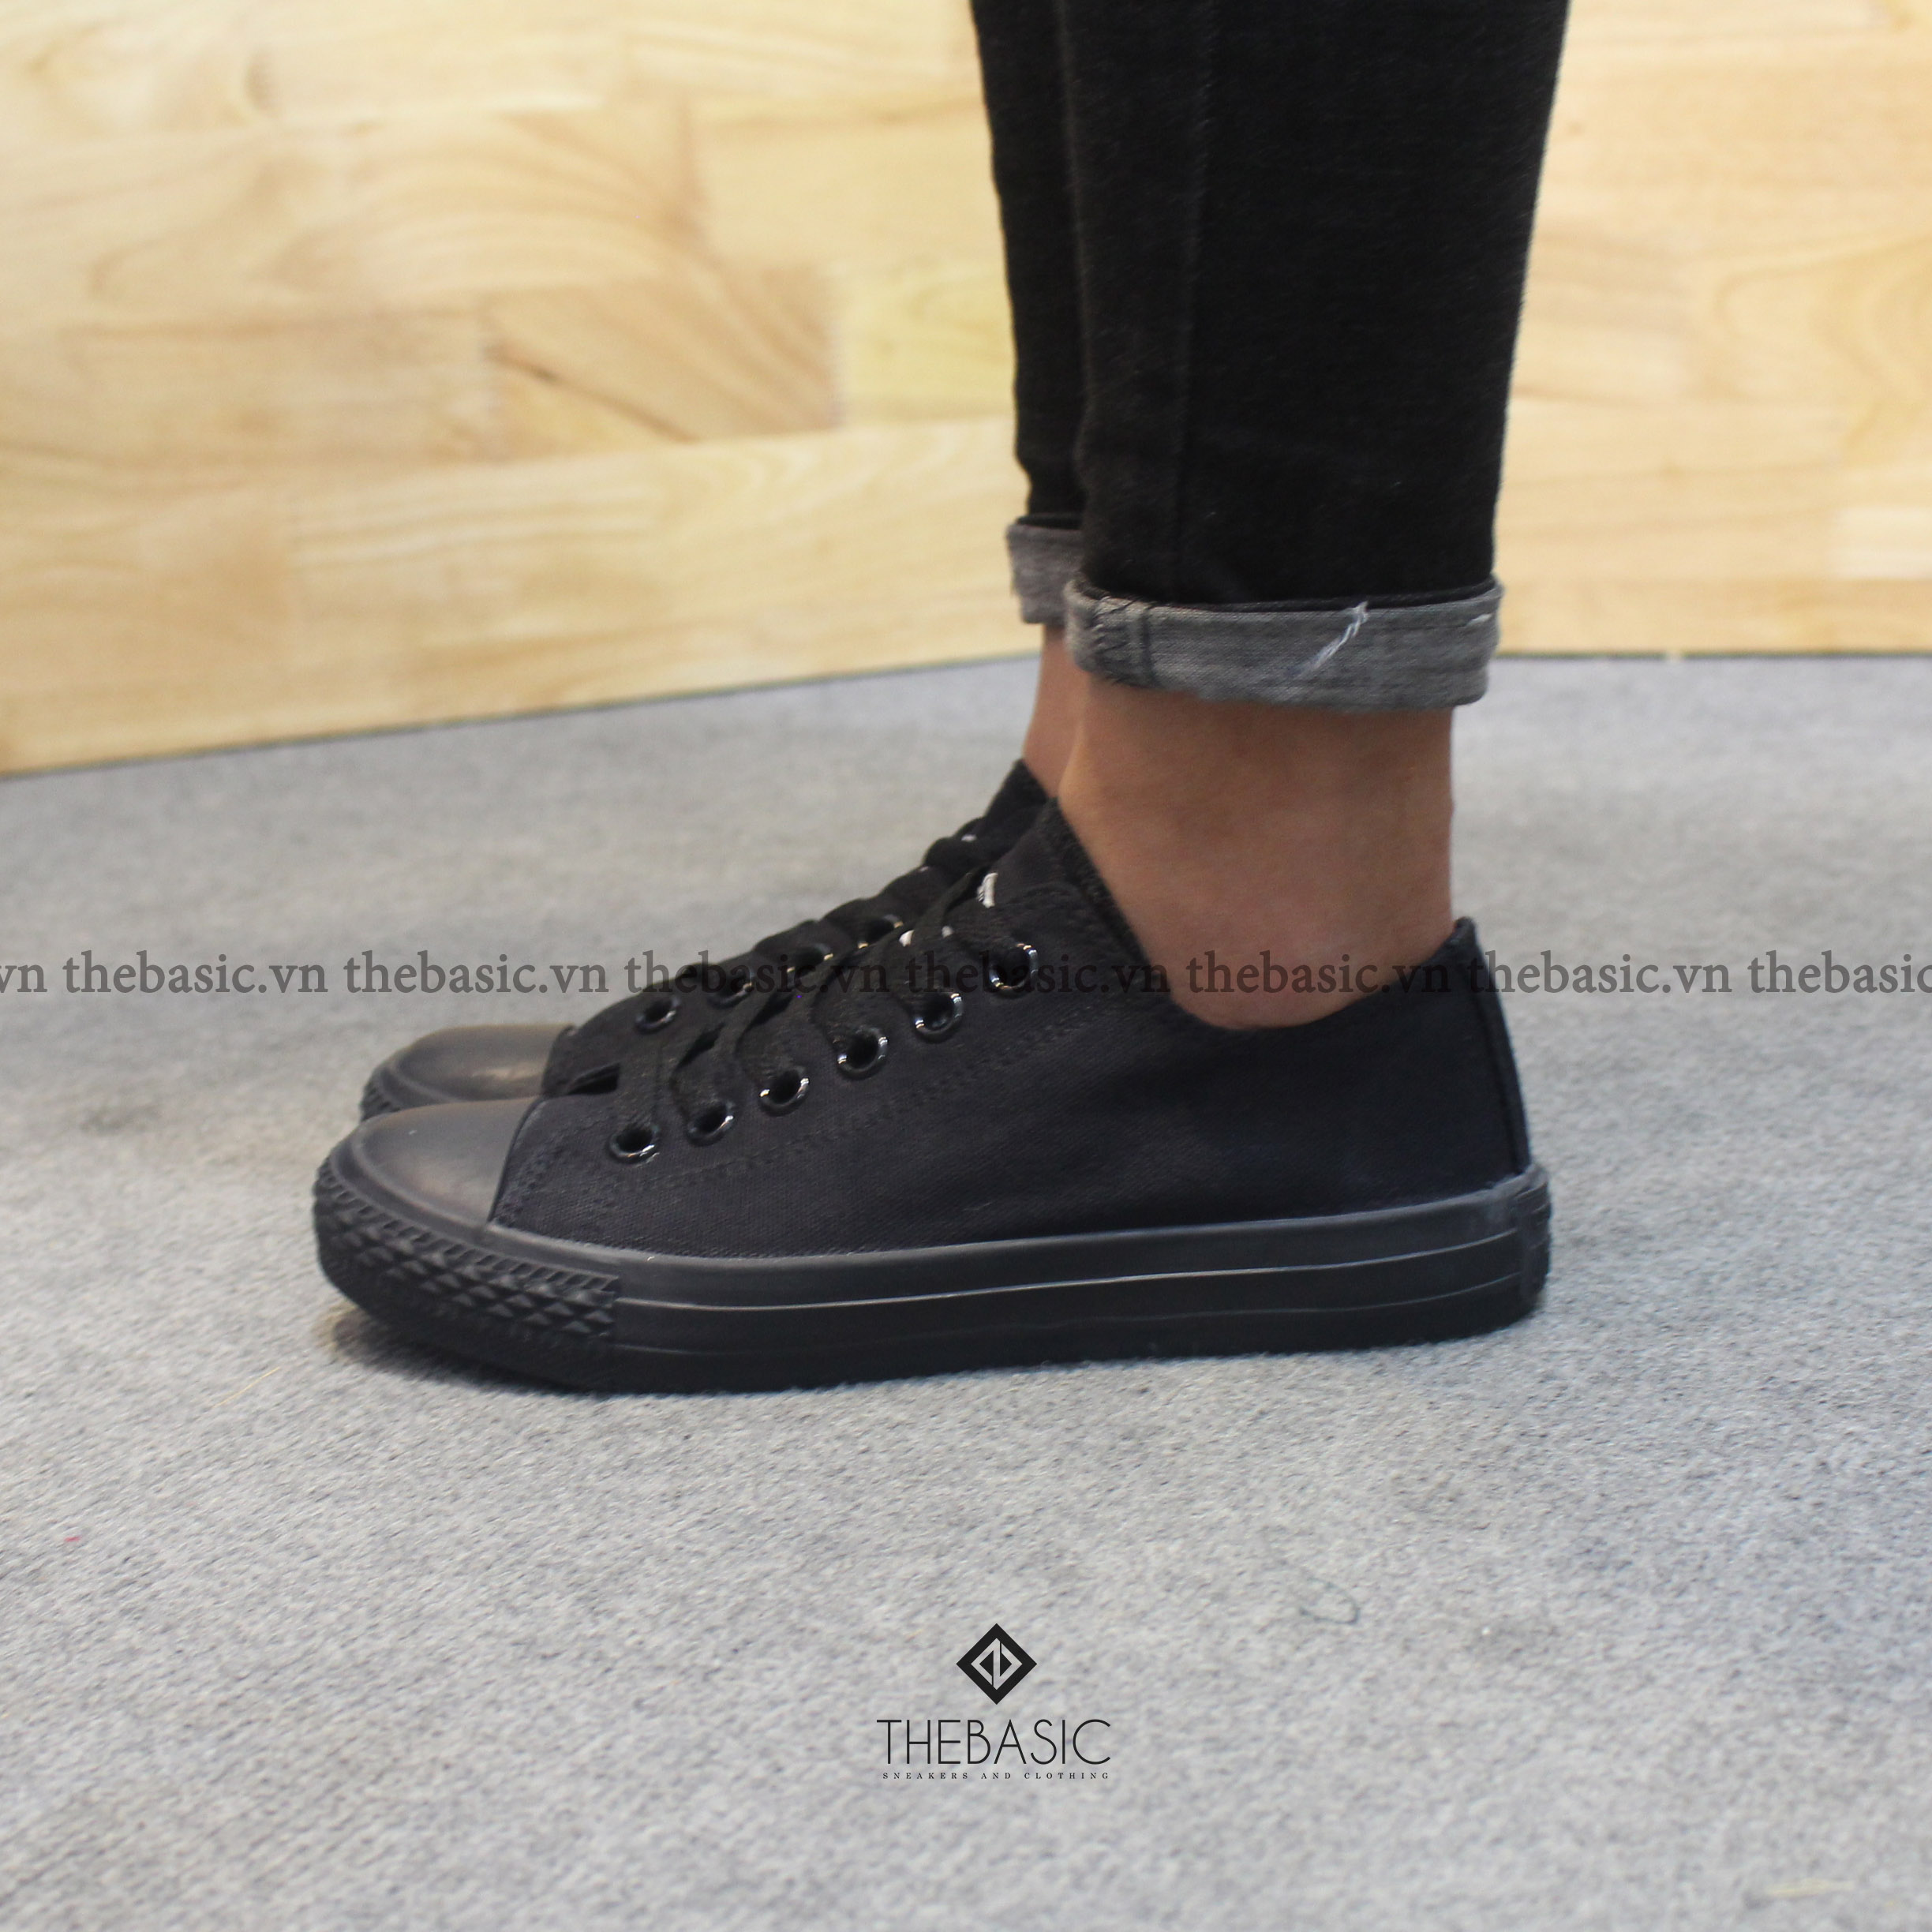 Converse Classic - Full Black Low - MUA 1 TẶNG 1